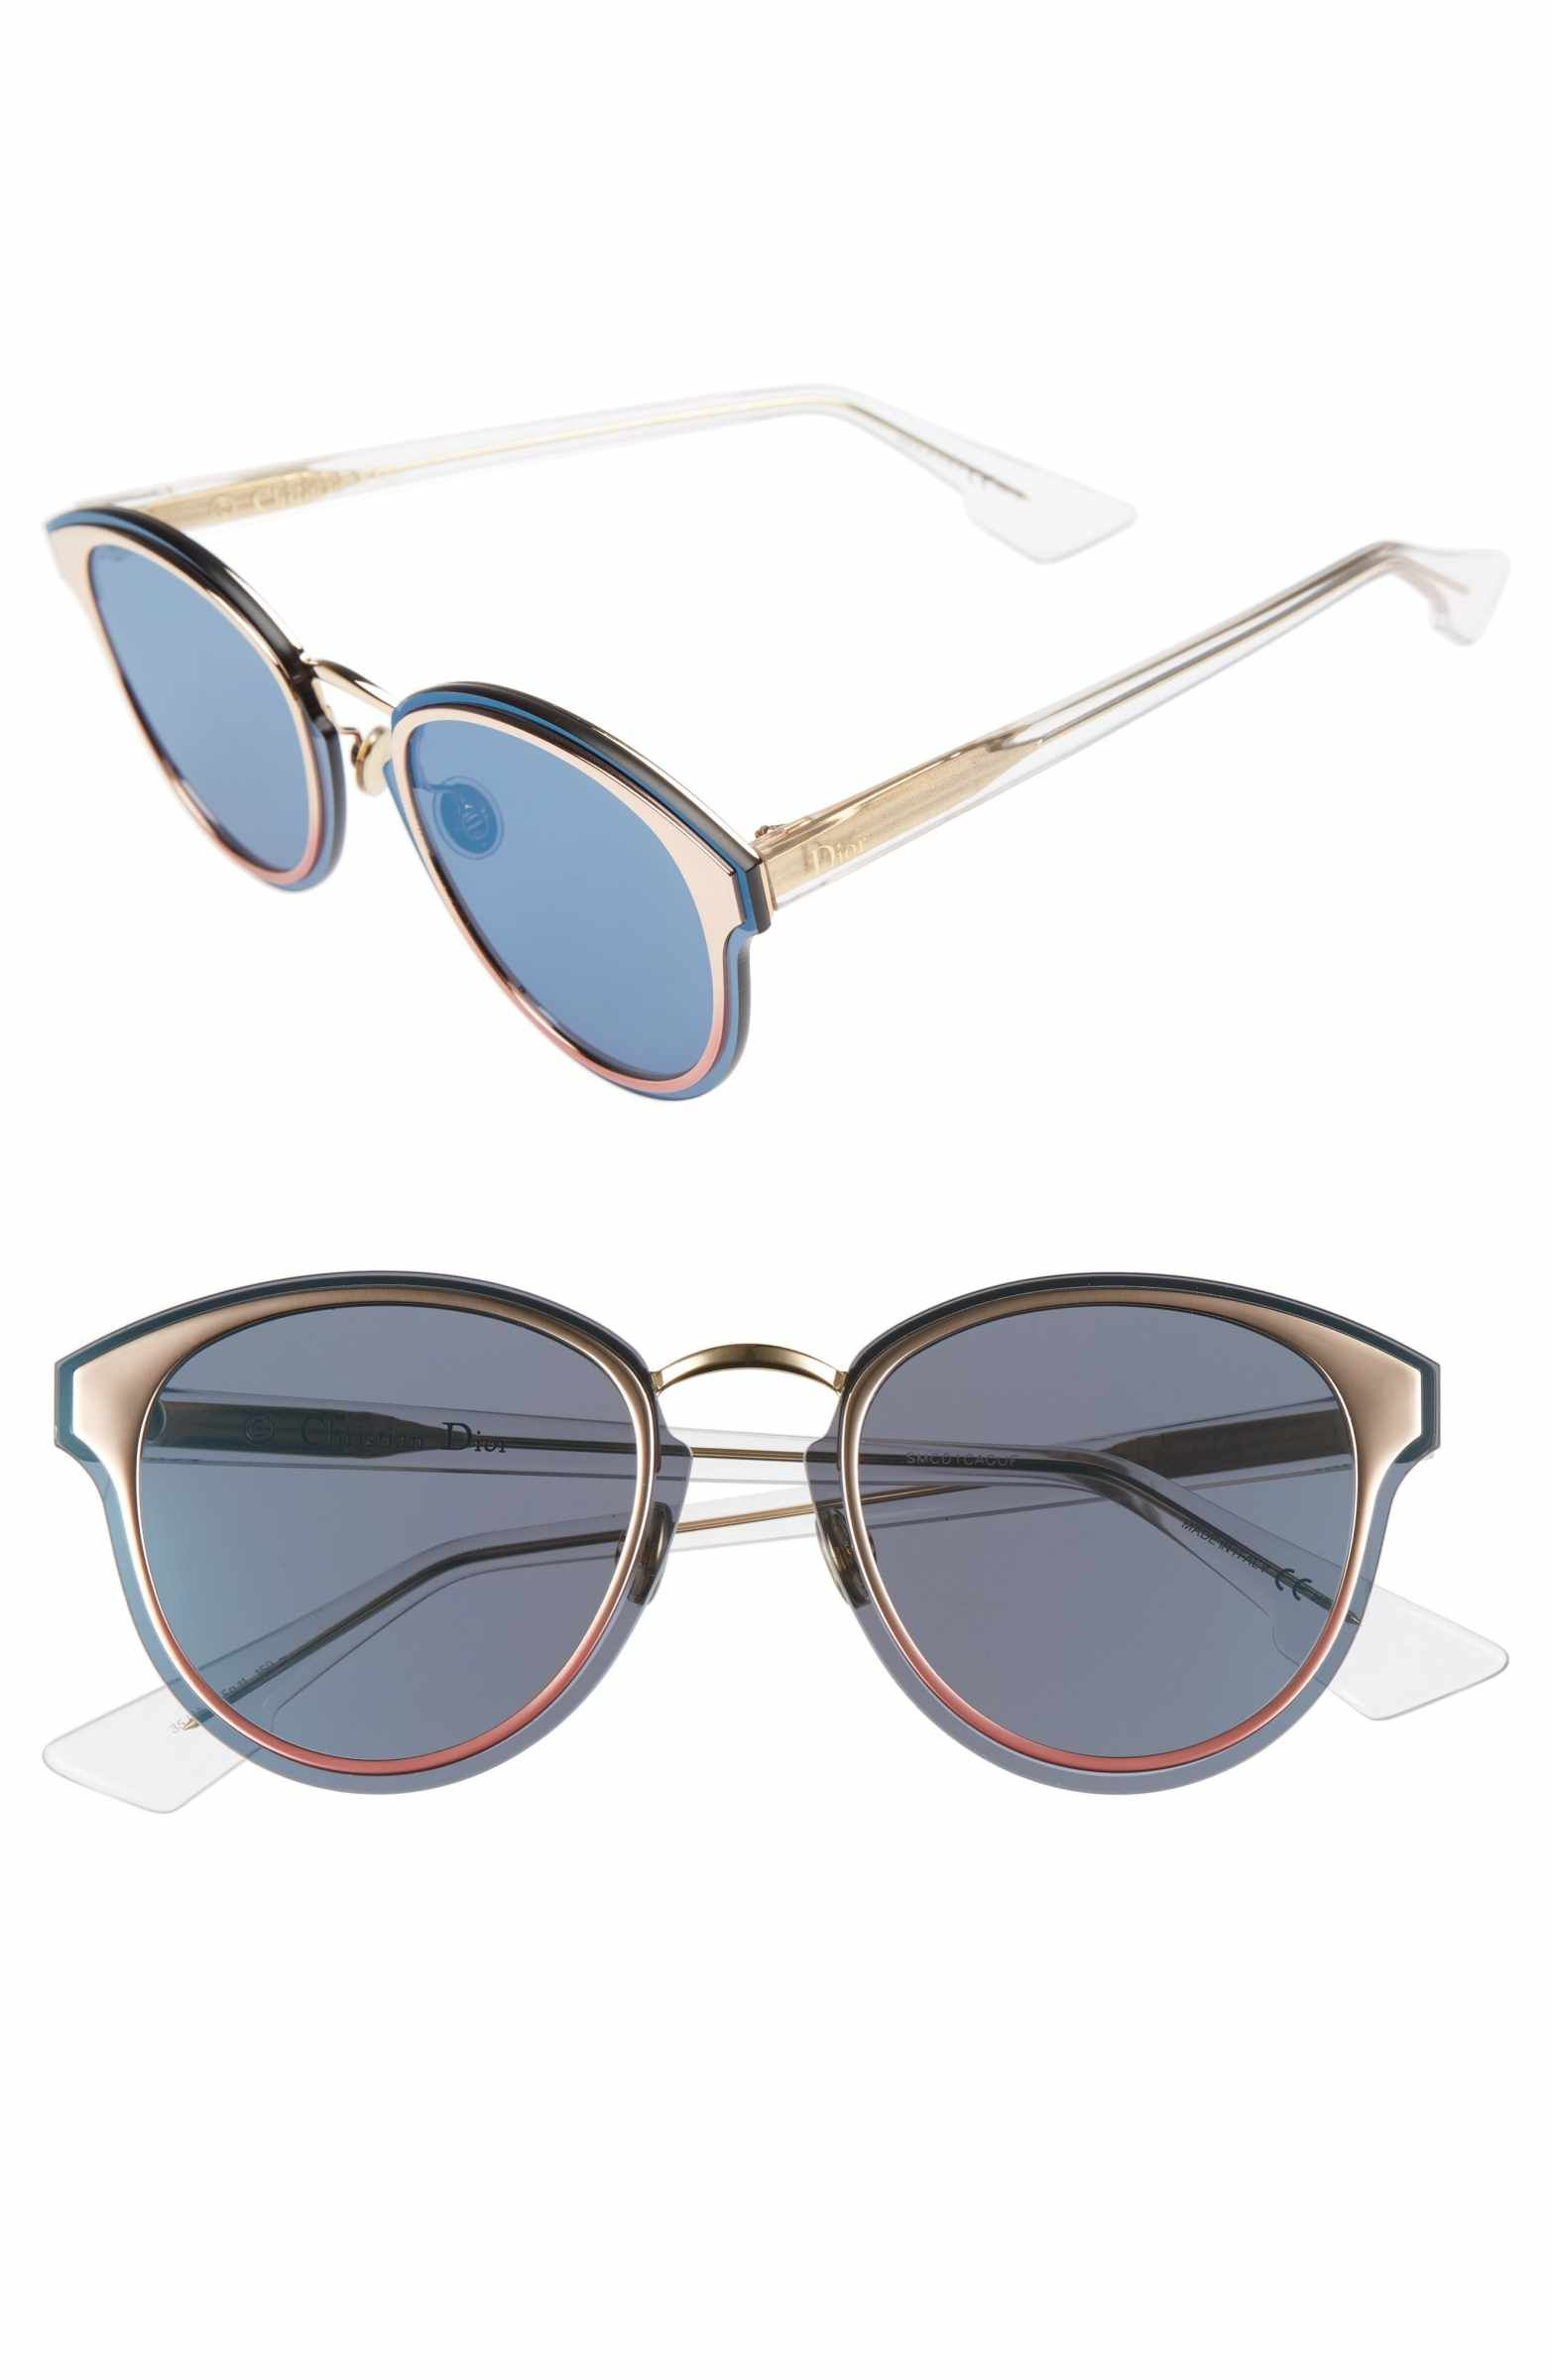 Nightfall 65mm Sunglasses